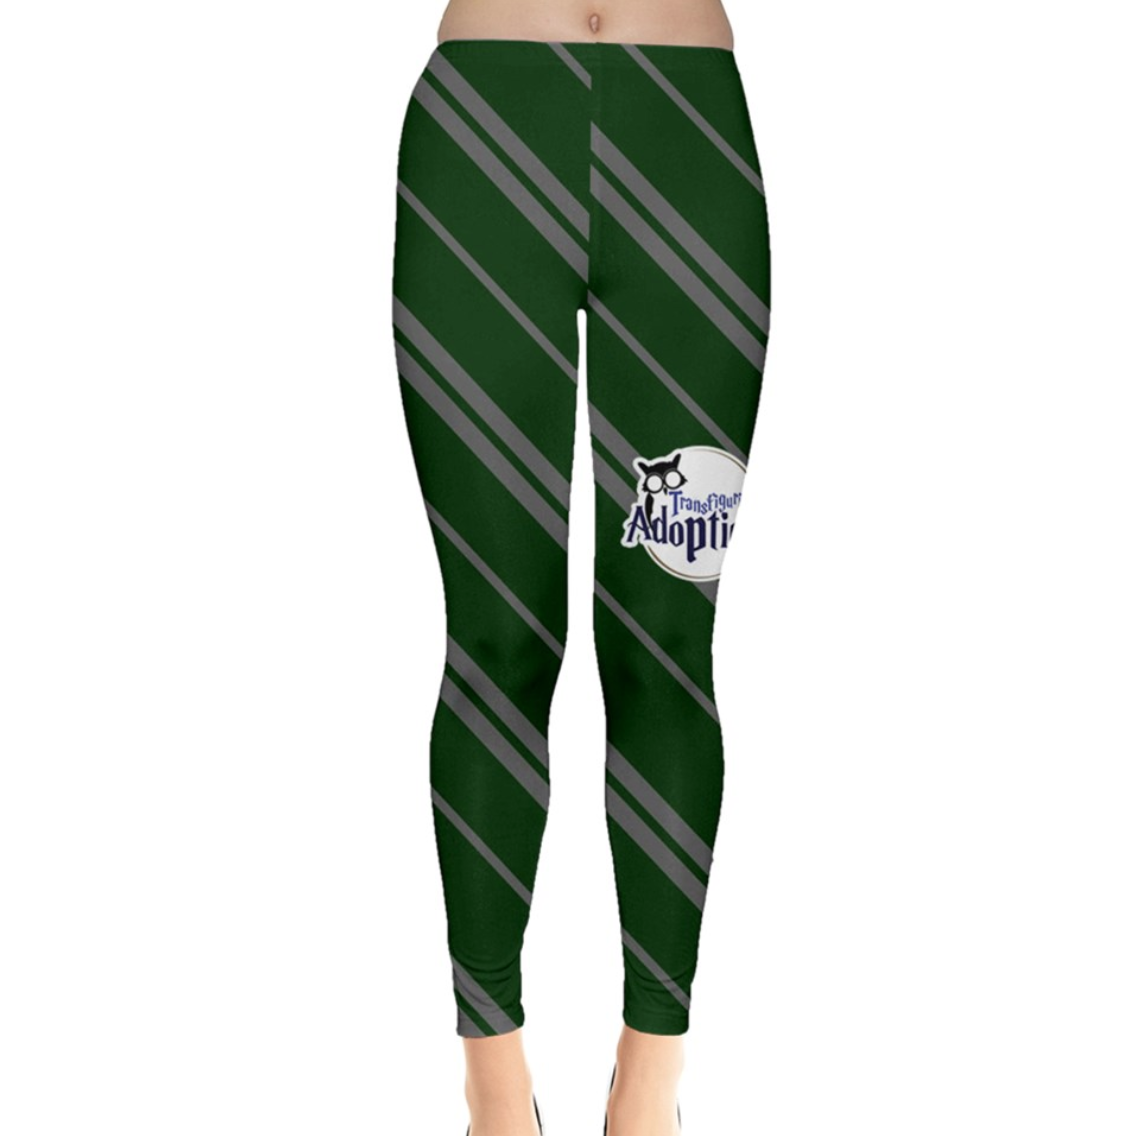 Green & Gray Striped Leggings - Inspired by Slytherin